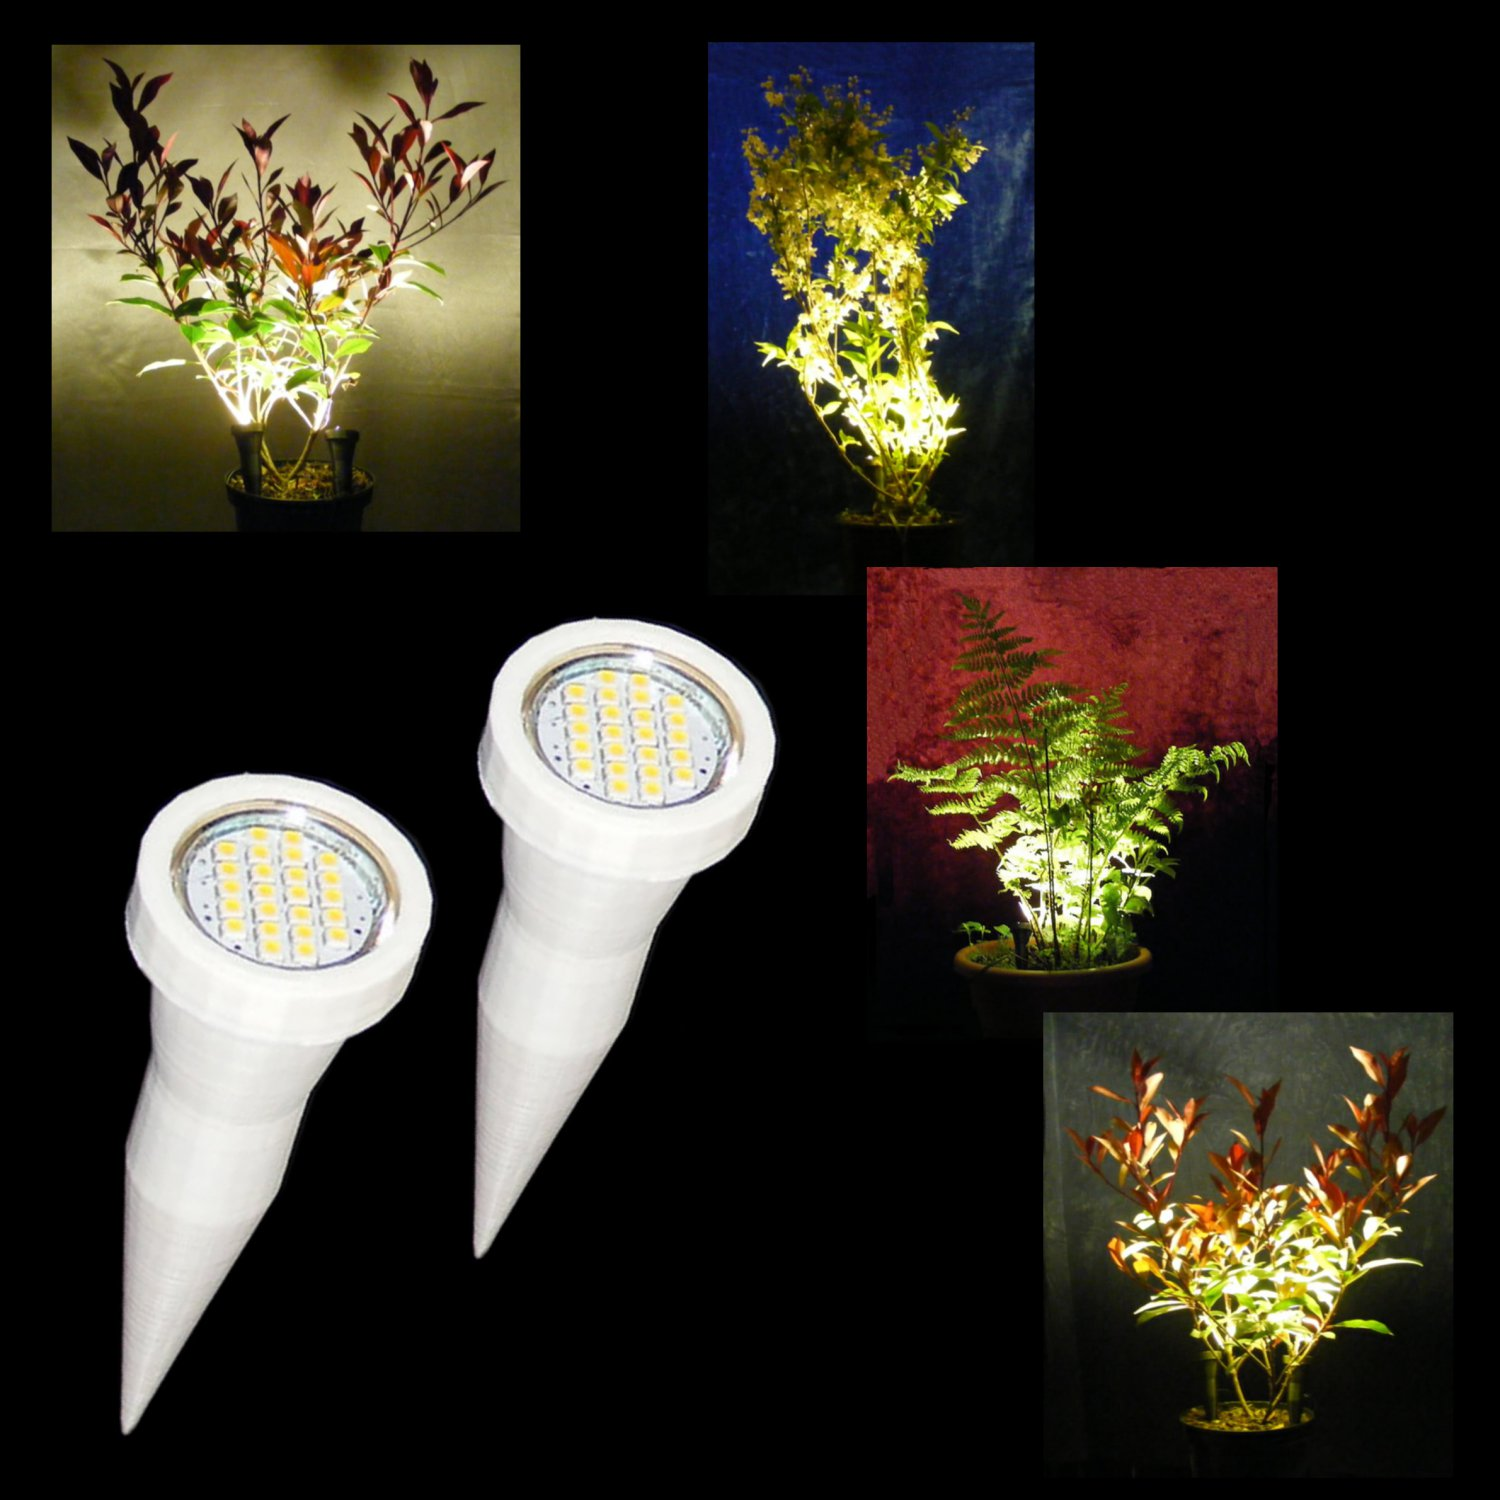 White Plant Pot Spike Lights / Pair of LED Plant Pot Uplighters / Display Lights with Mains Adapter